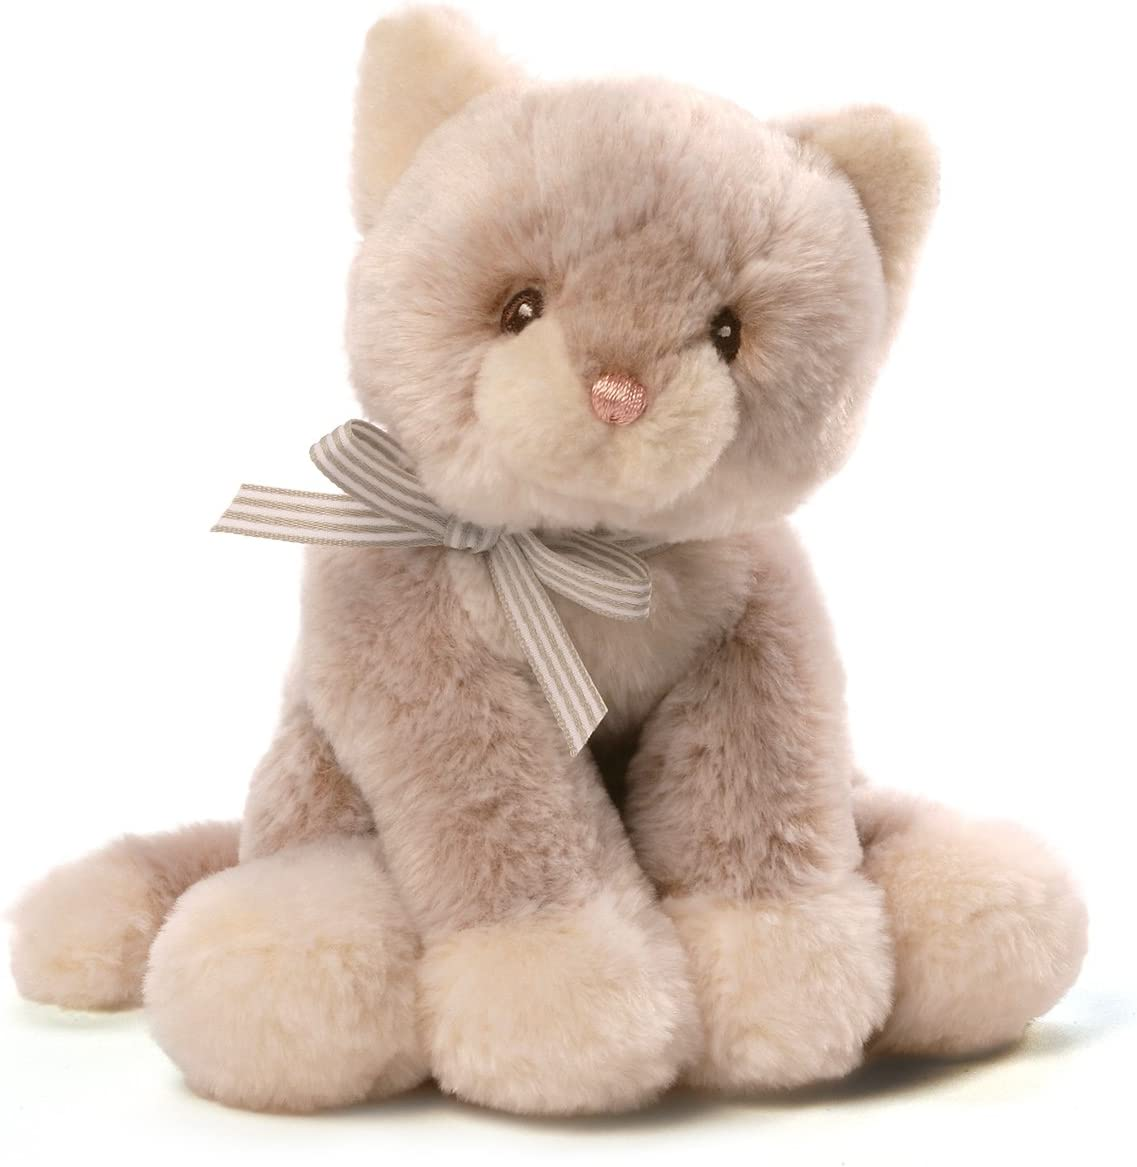 GUND Baby Oh Popularity So Sales of SALE items from new works Plush Tan Kitty Soft